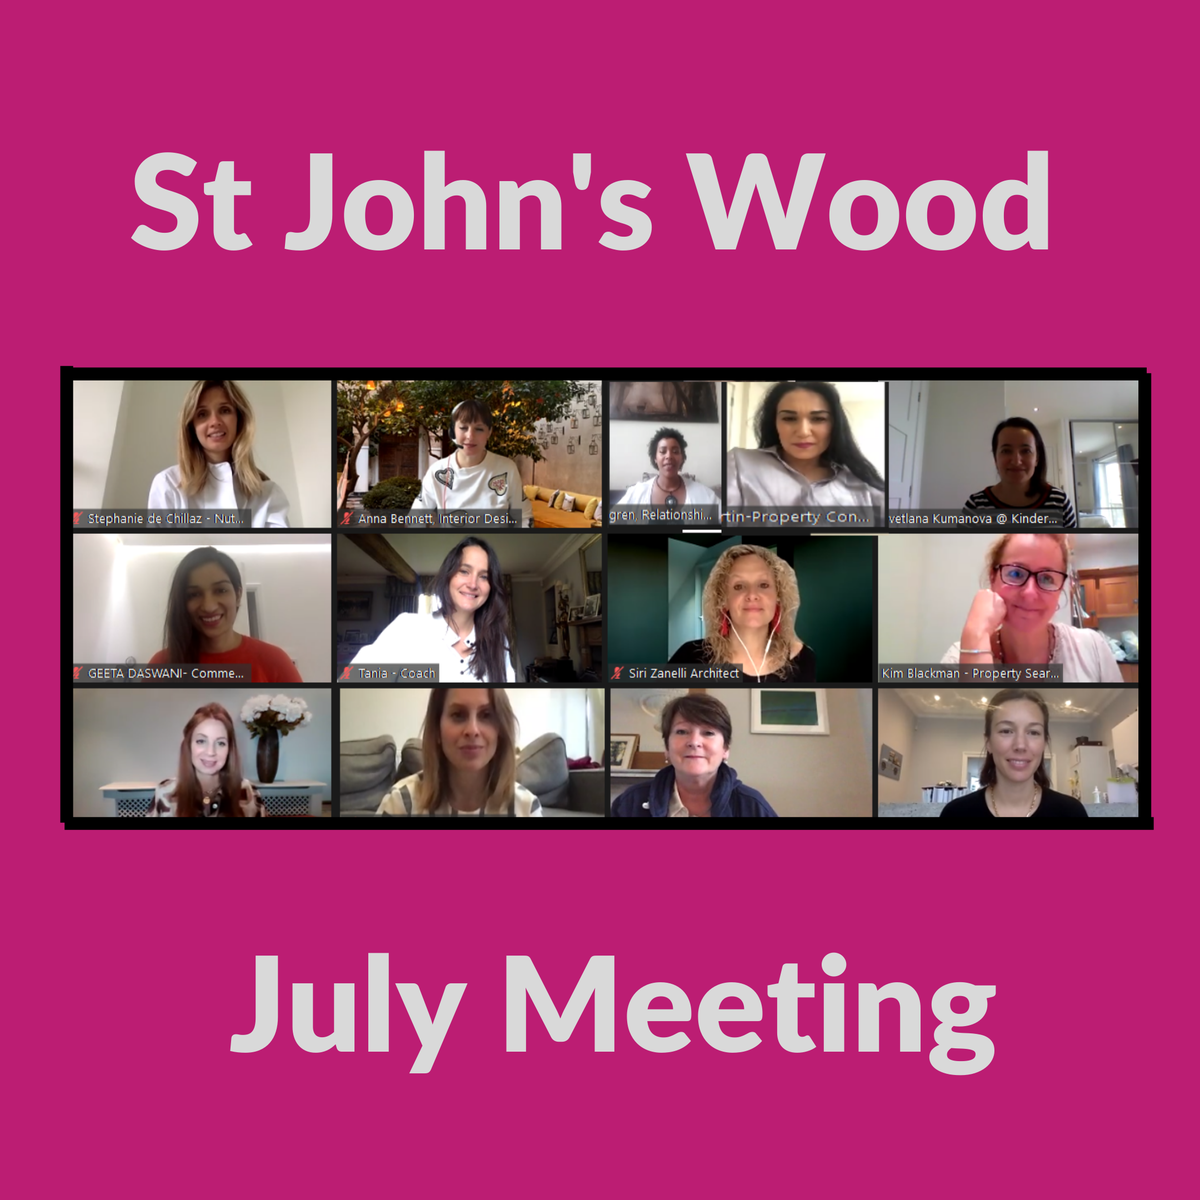 Another fantastic meeting of @Athenanetwork #StJohnsWood group on Thursday where we welcomed new member @TheDLC7, learnt about #nutrition for #mentalhealth from Stephanie de Chillaz, and said goodbye to @KerenBeaumont going on mat leave. join us in September for our next meeting. https://t.co/GS1WAX5LiD